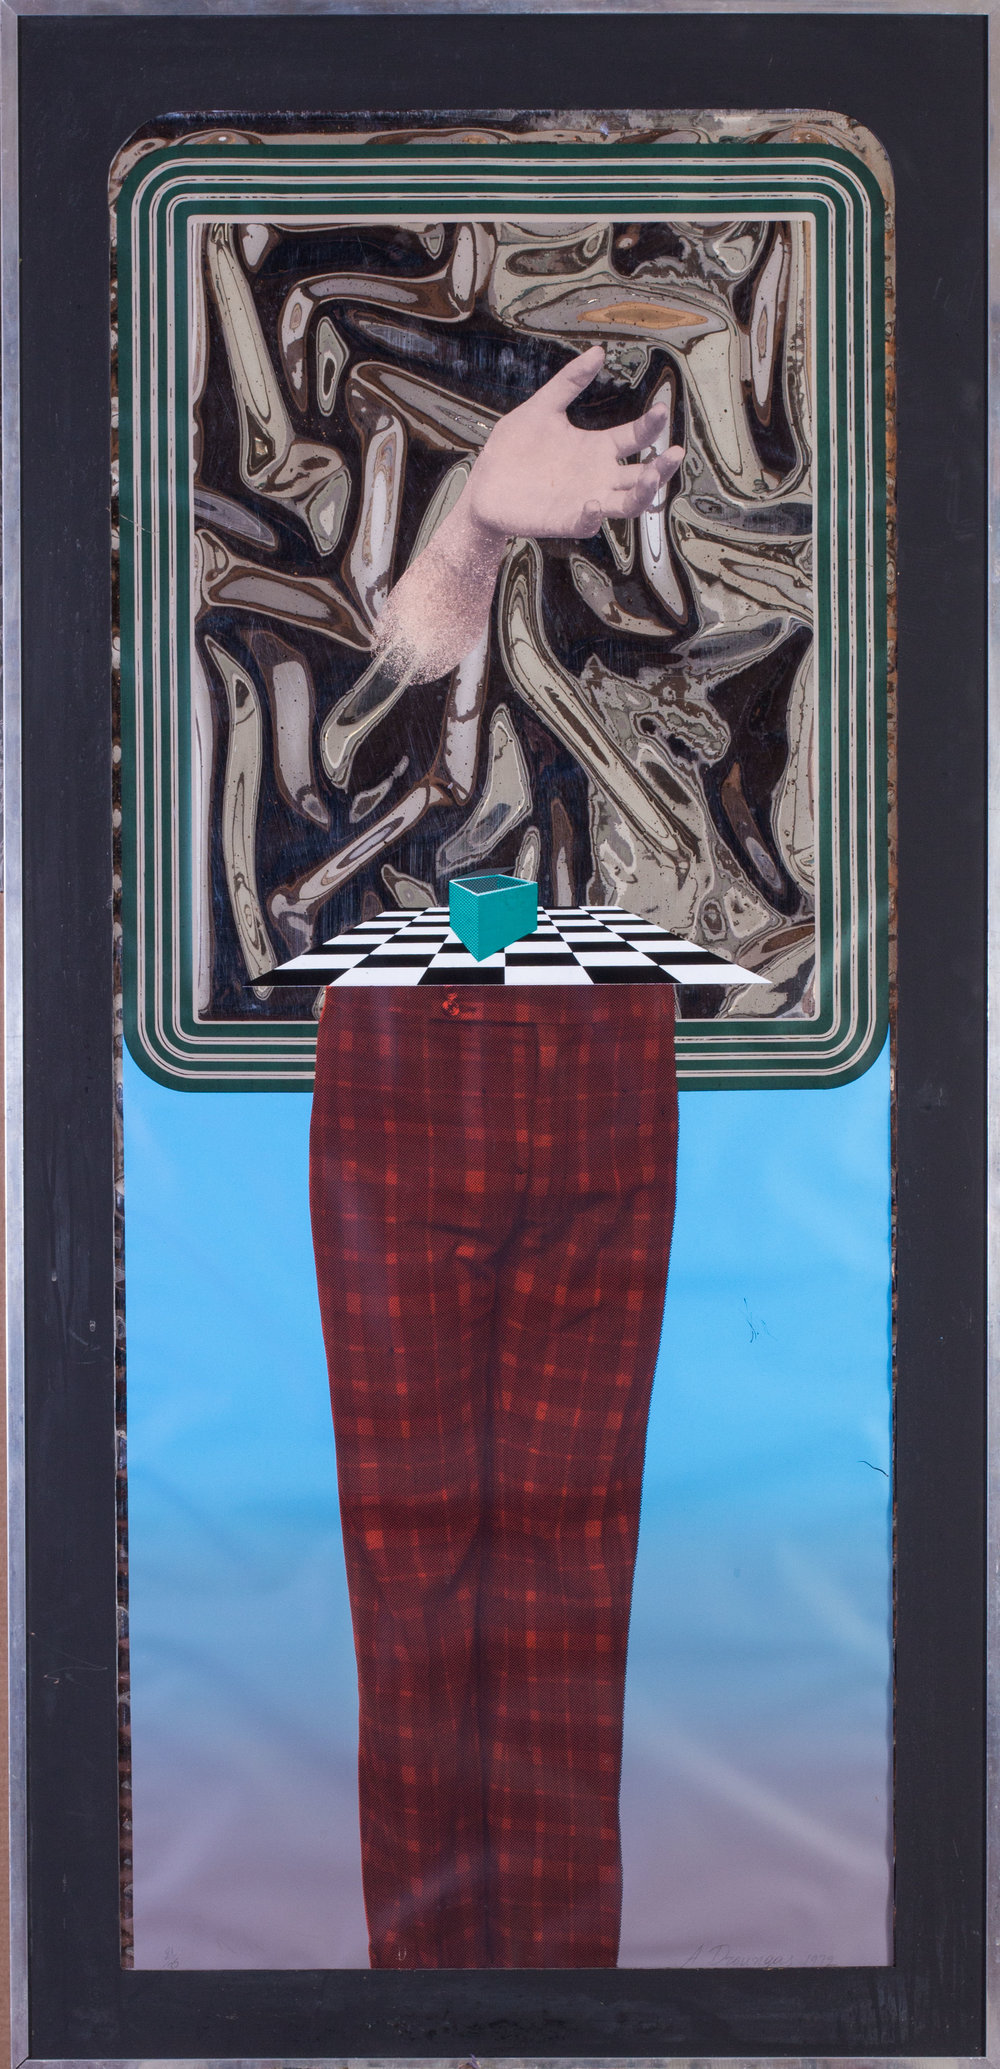 Achilleas Droungas (Greek, b.1940)     Trousers   Signed and dated 'A. Droungas, 1972' numbered 21/35   Silkscreen   59.3/4 x 28.3/4in. (152 x 73cm.)   From the Redfern Gallery, Cork Street   Price: £750